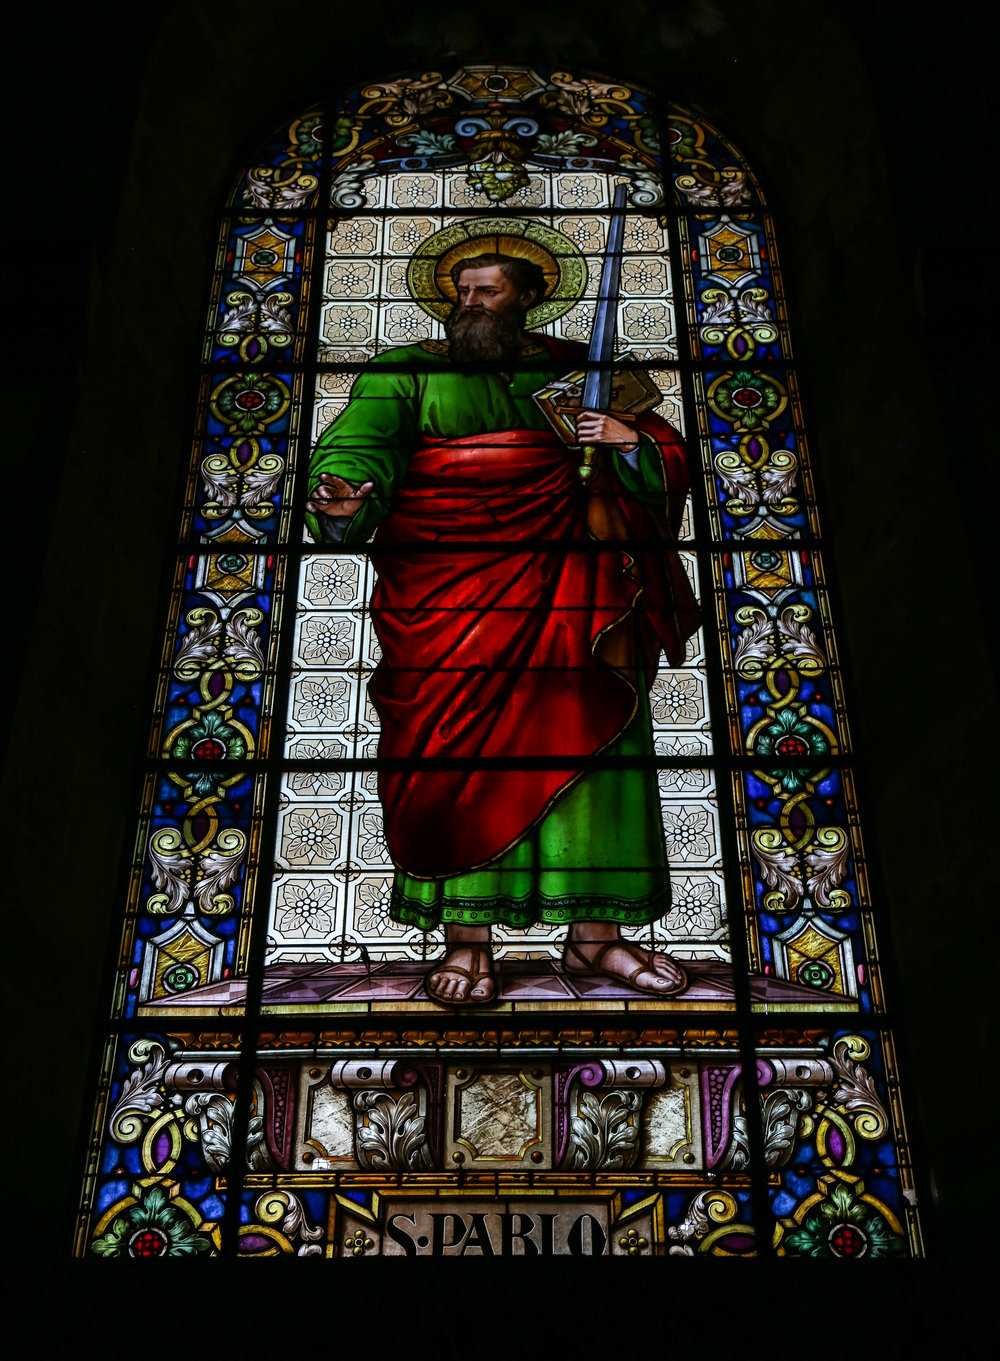 Stained glass in the Basilica